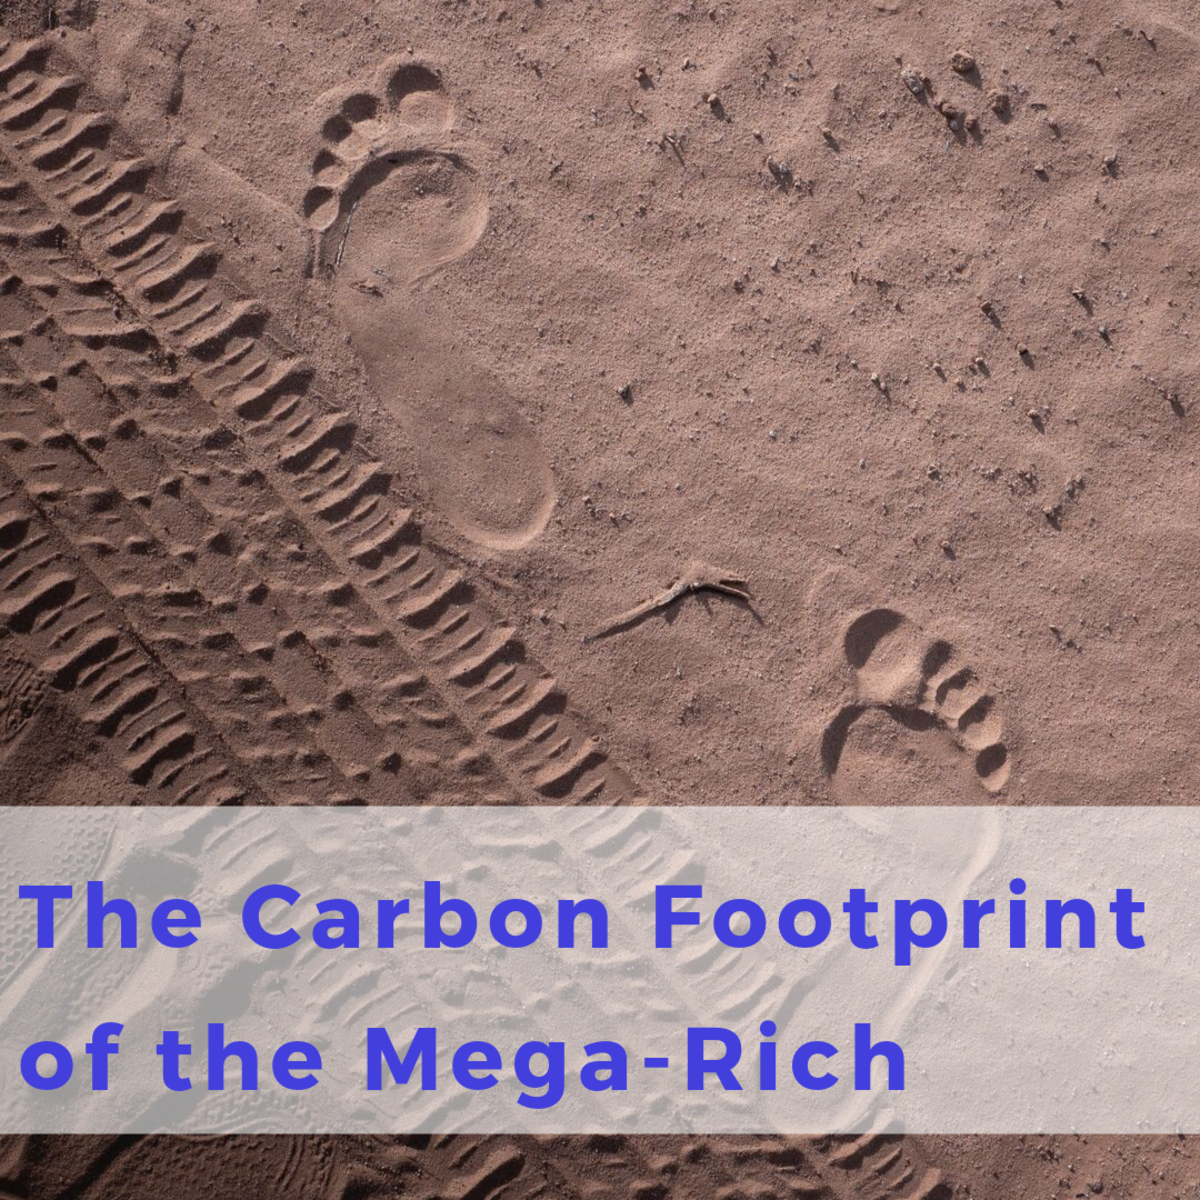 The Carbon Footprint of the Mega-Rich